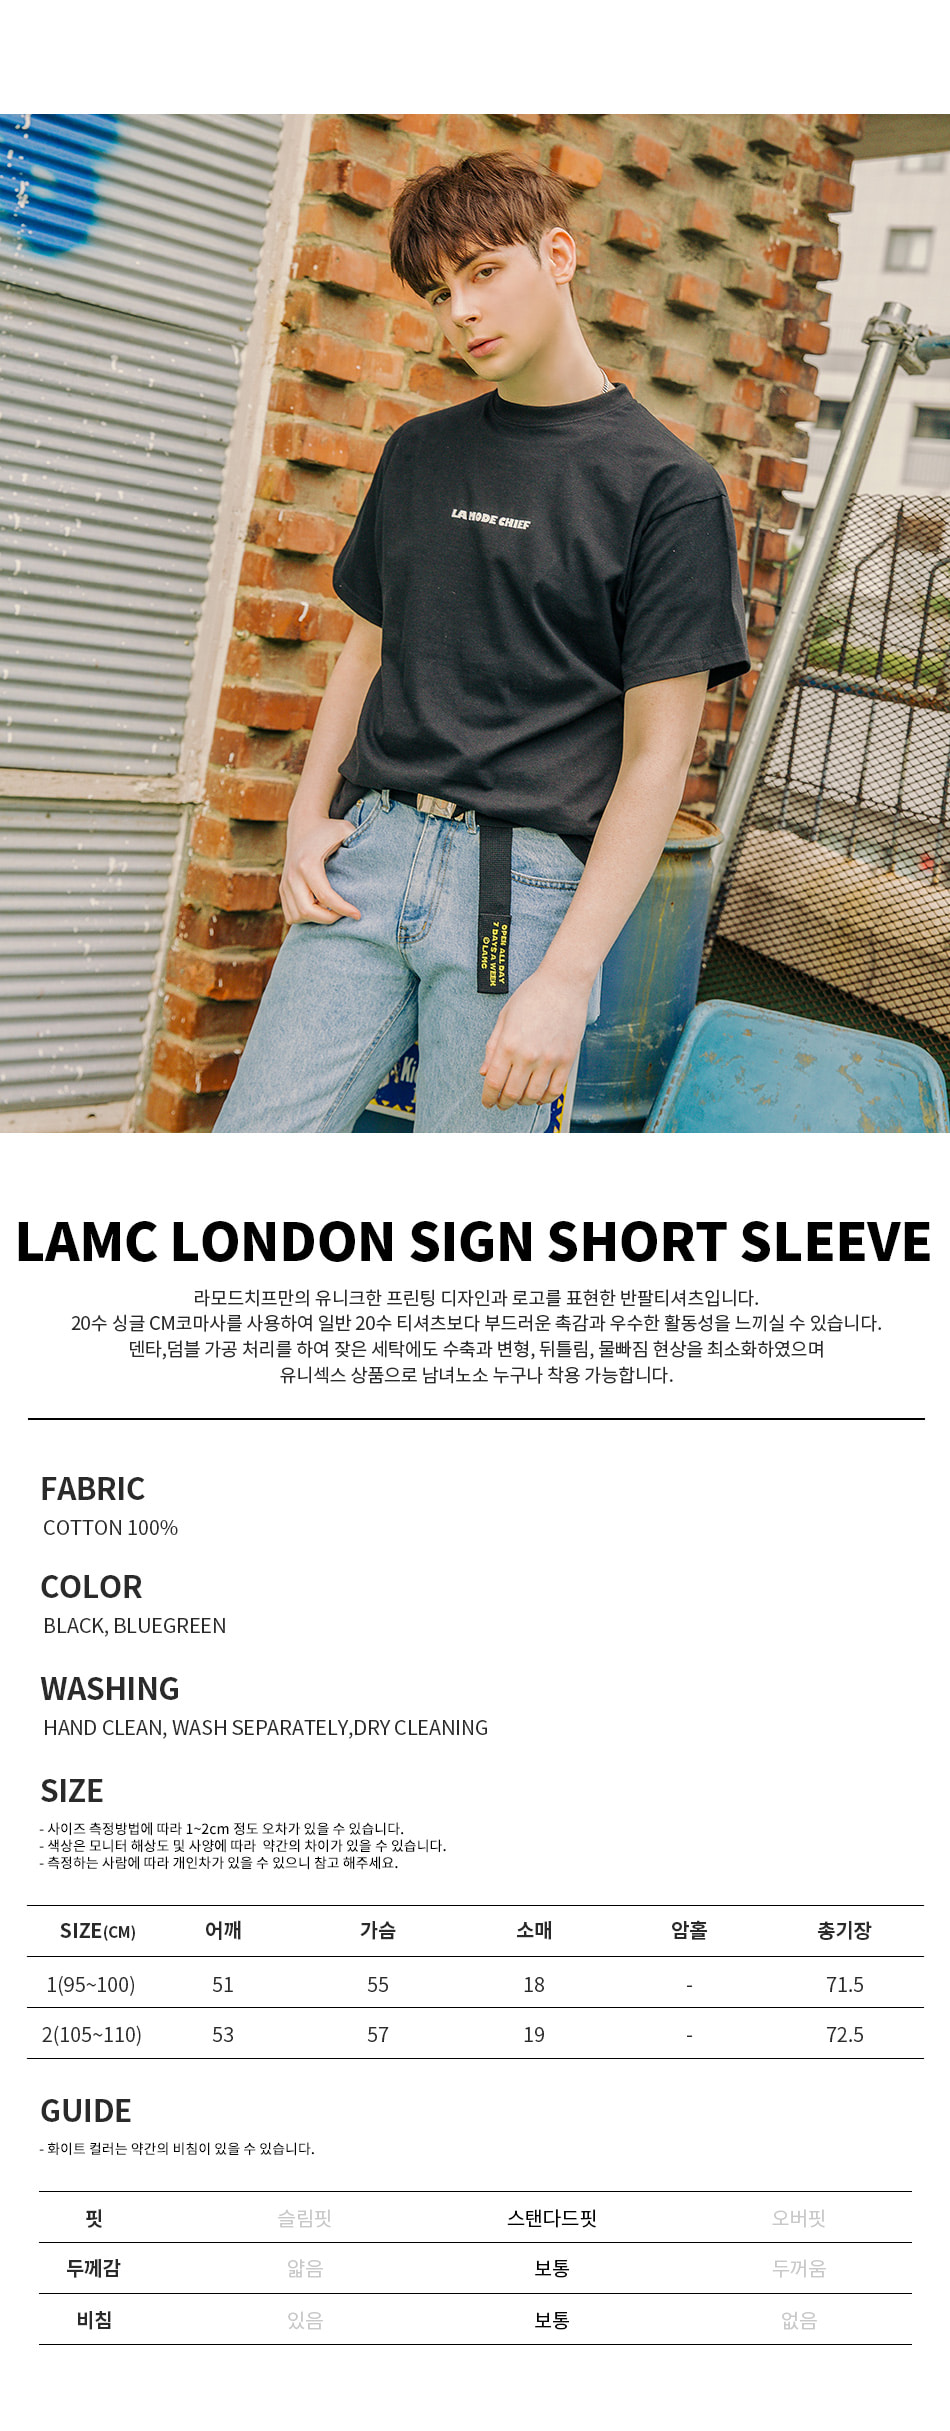 라모드치프 LAMC LONDON SIGN SHORT SLEEVE (BLACK)